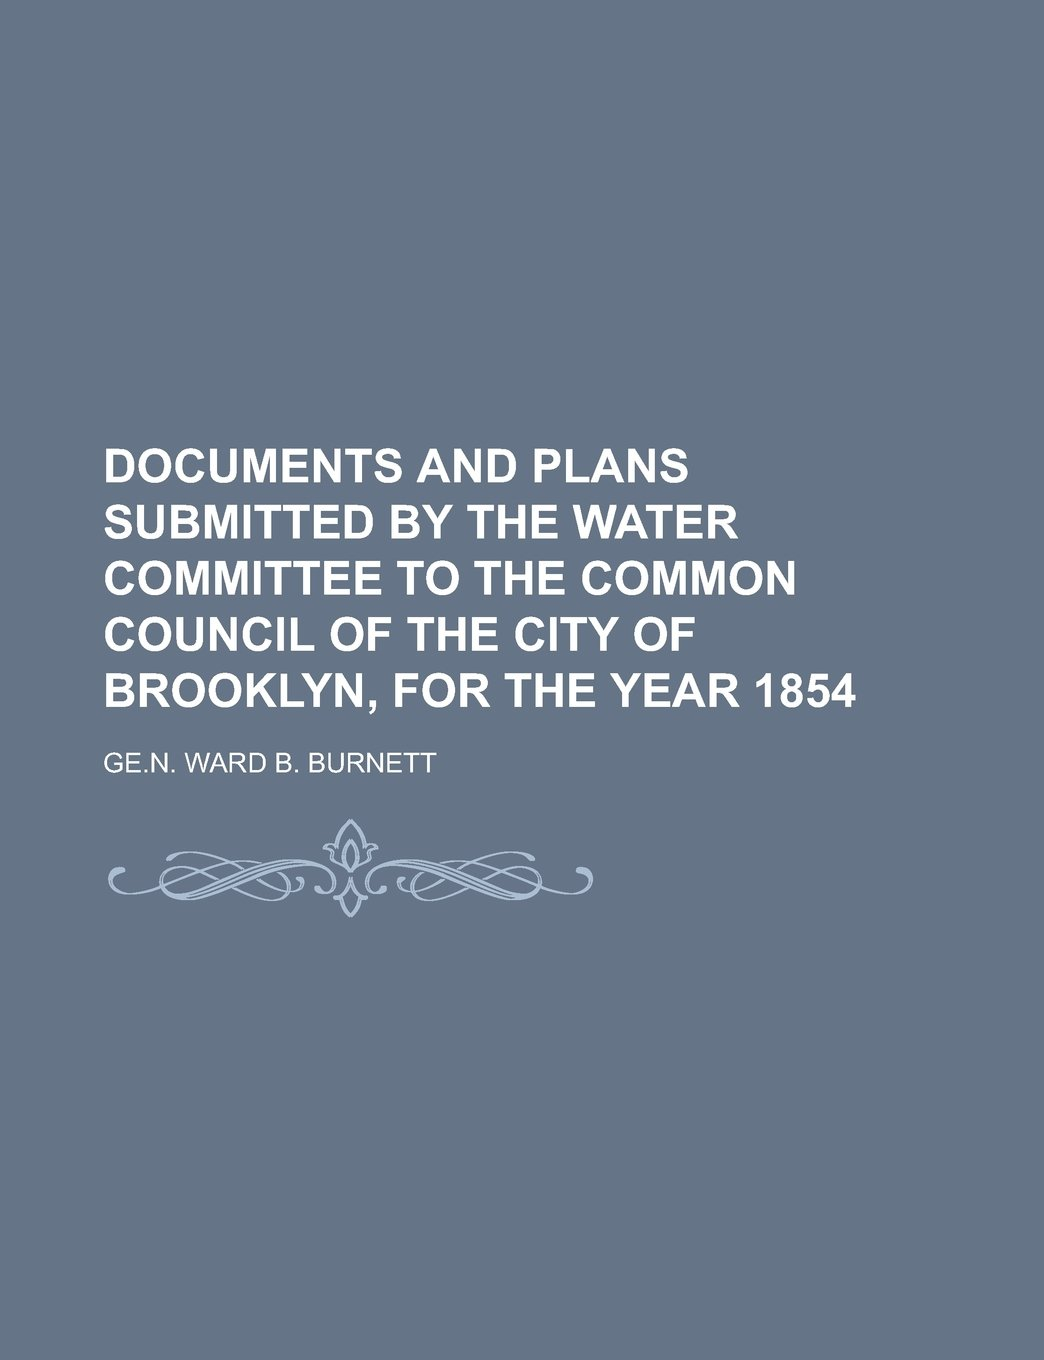 DOCUMENTS AND PLANS SUBMITTED BY THE WATER COMMITTEE TO THE COMMON COUNCIL OF THE CITY OF BROOKLYN, FOR THE YEAR 1854 pdf